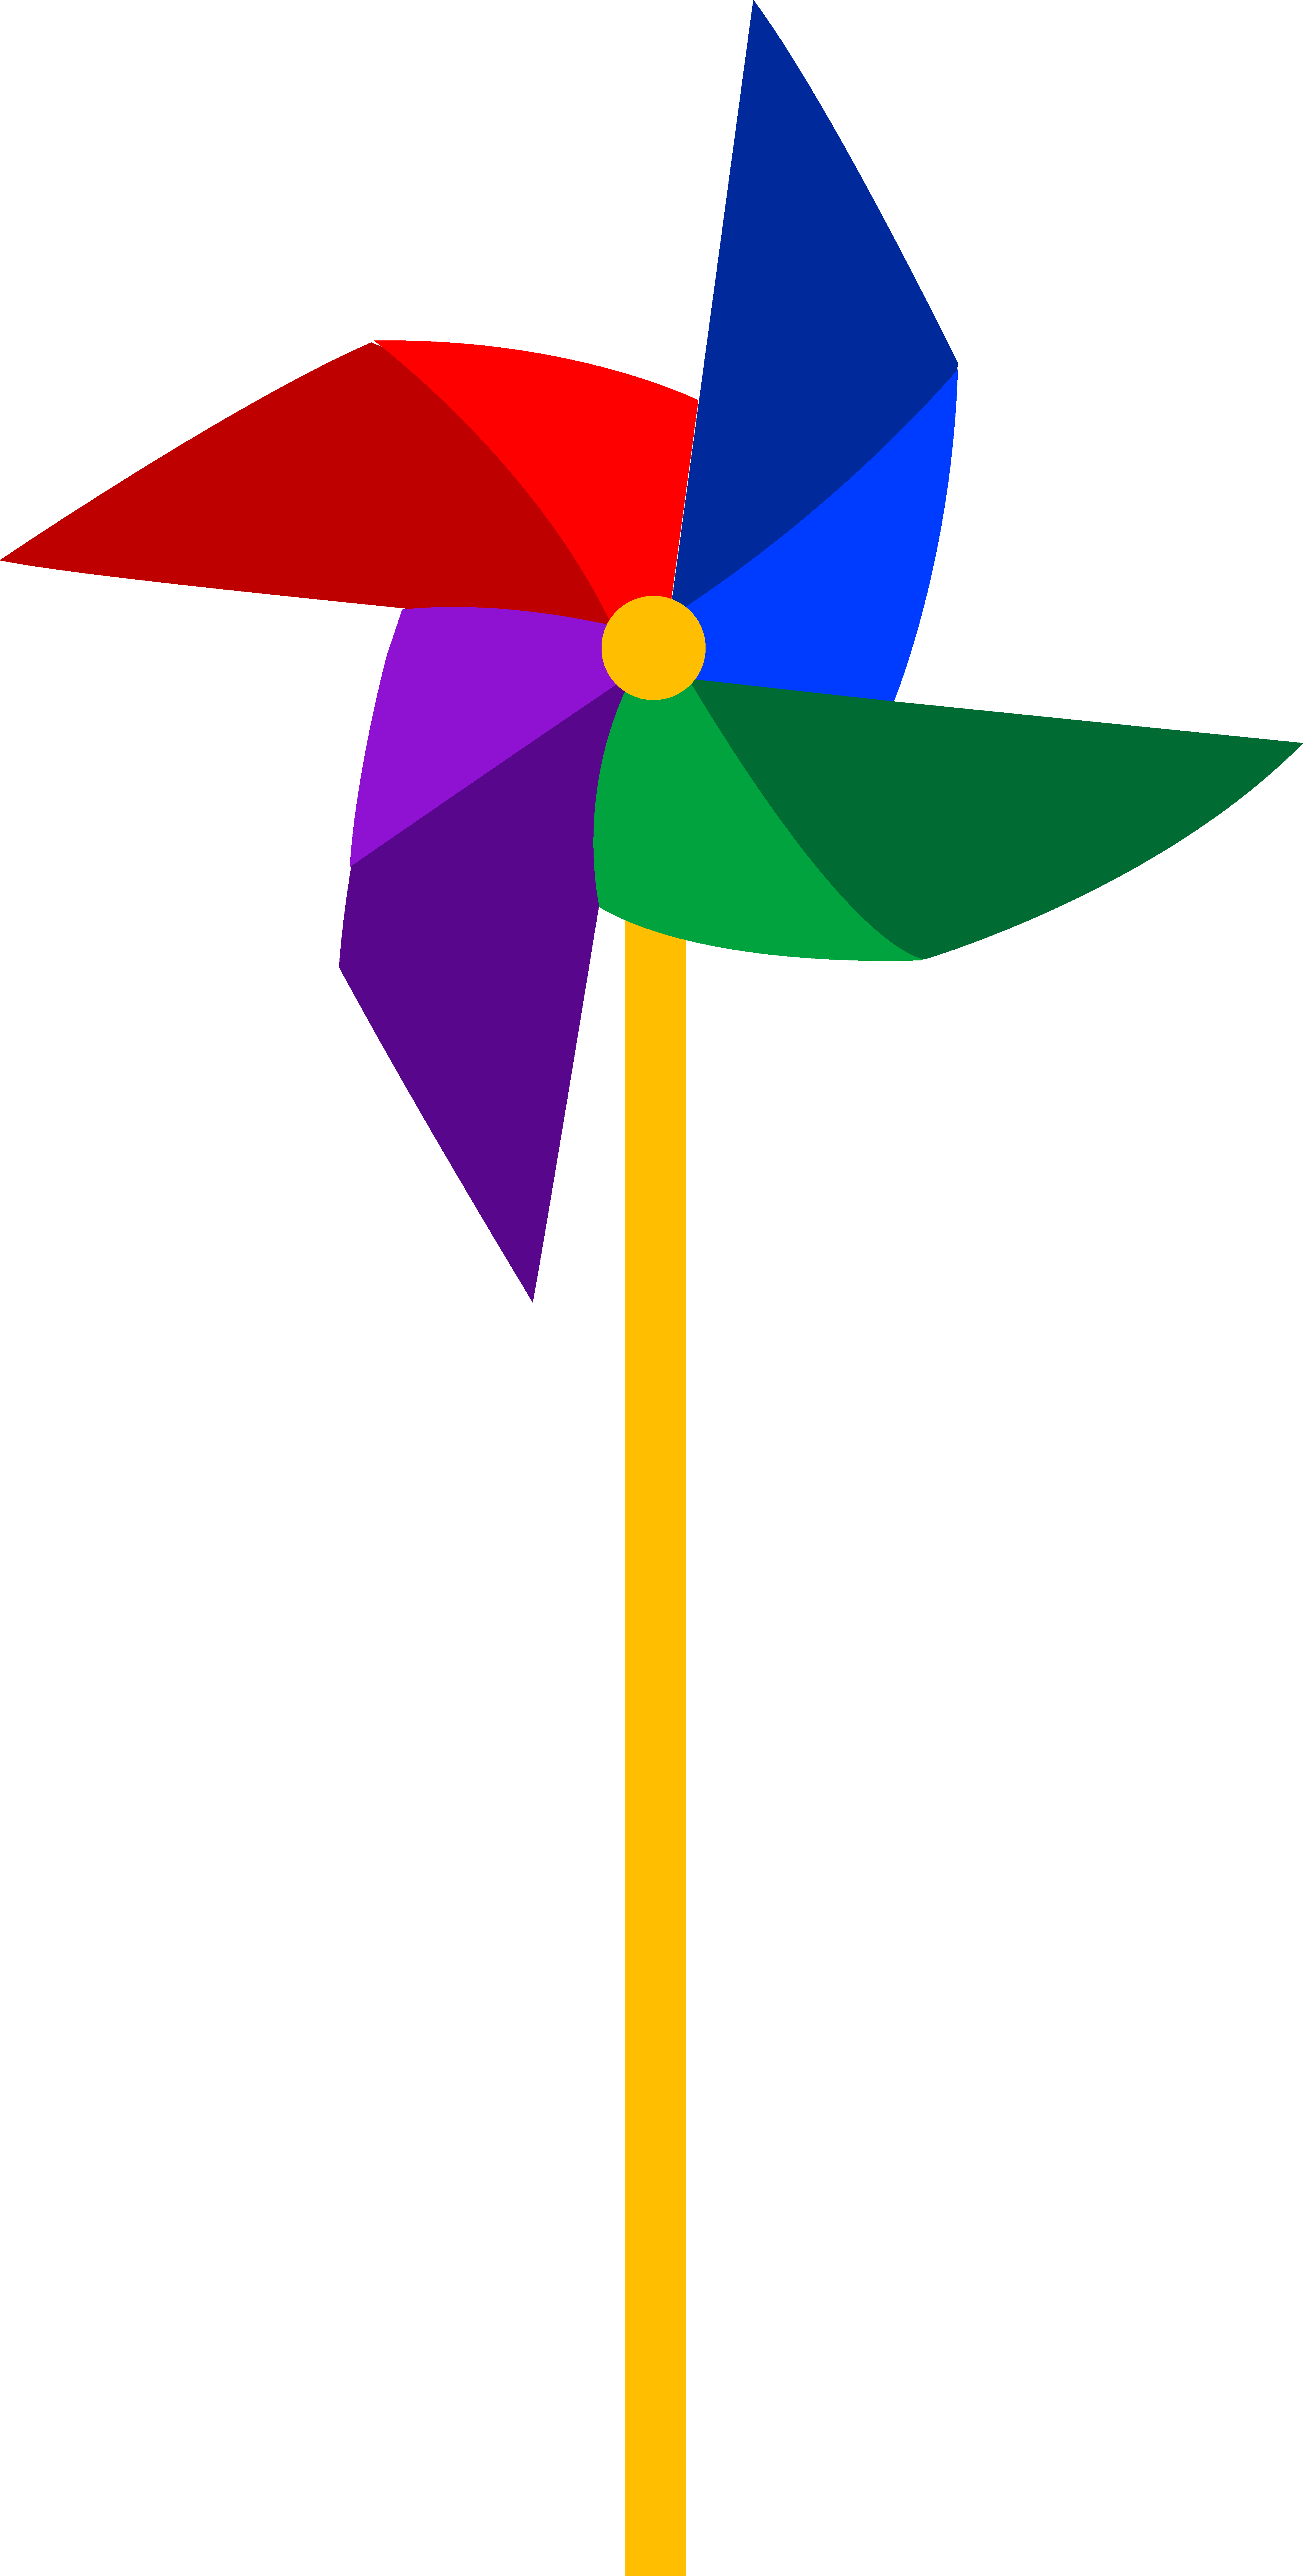 svg royalty free library Clip art of a colorful pinwheel toy